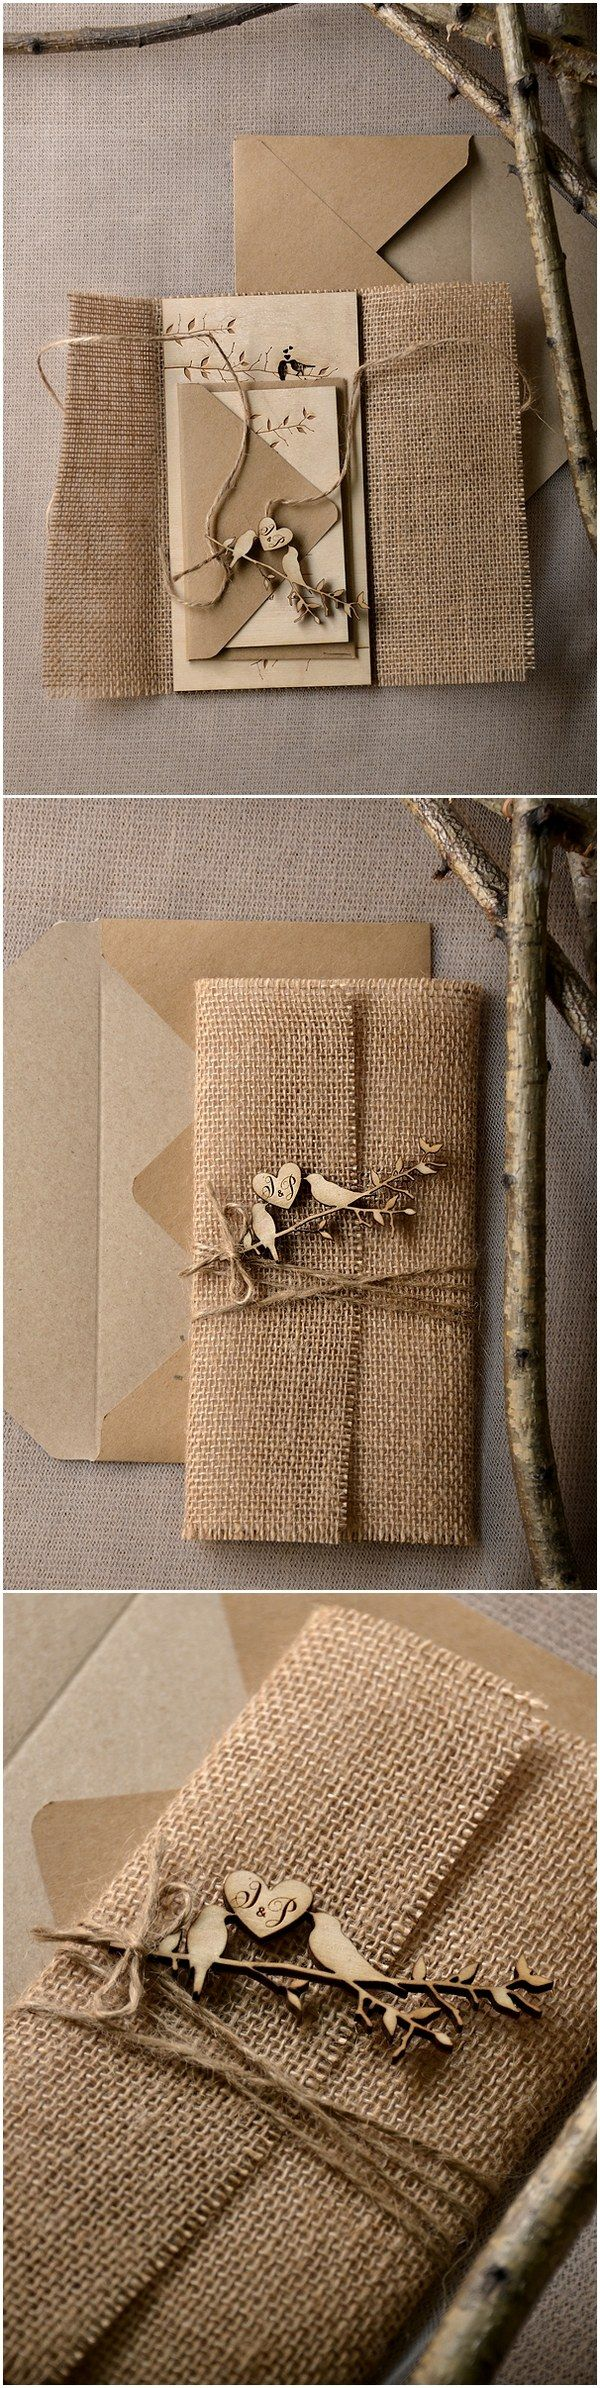 Rustic country burlap wedding invitations with laser cut wood love birds @4LOVEPolkaDots